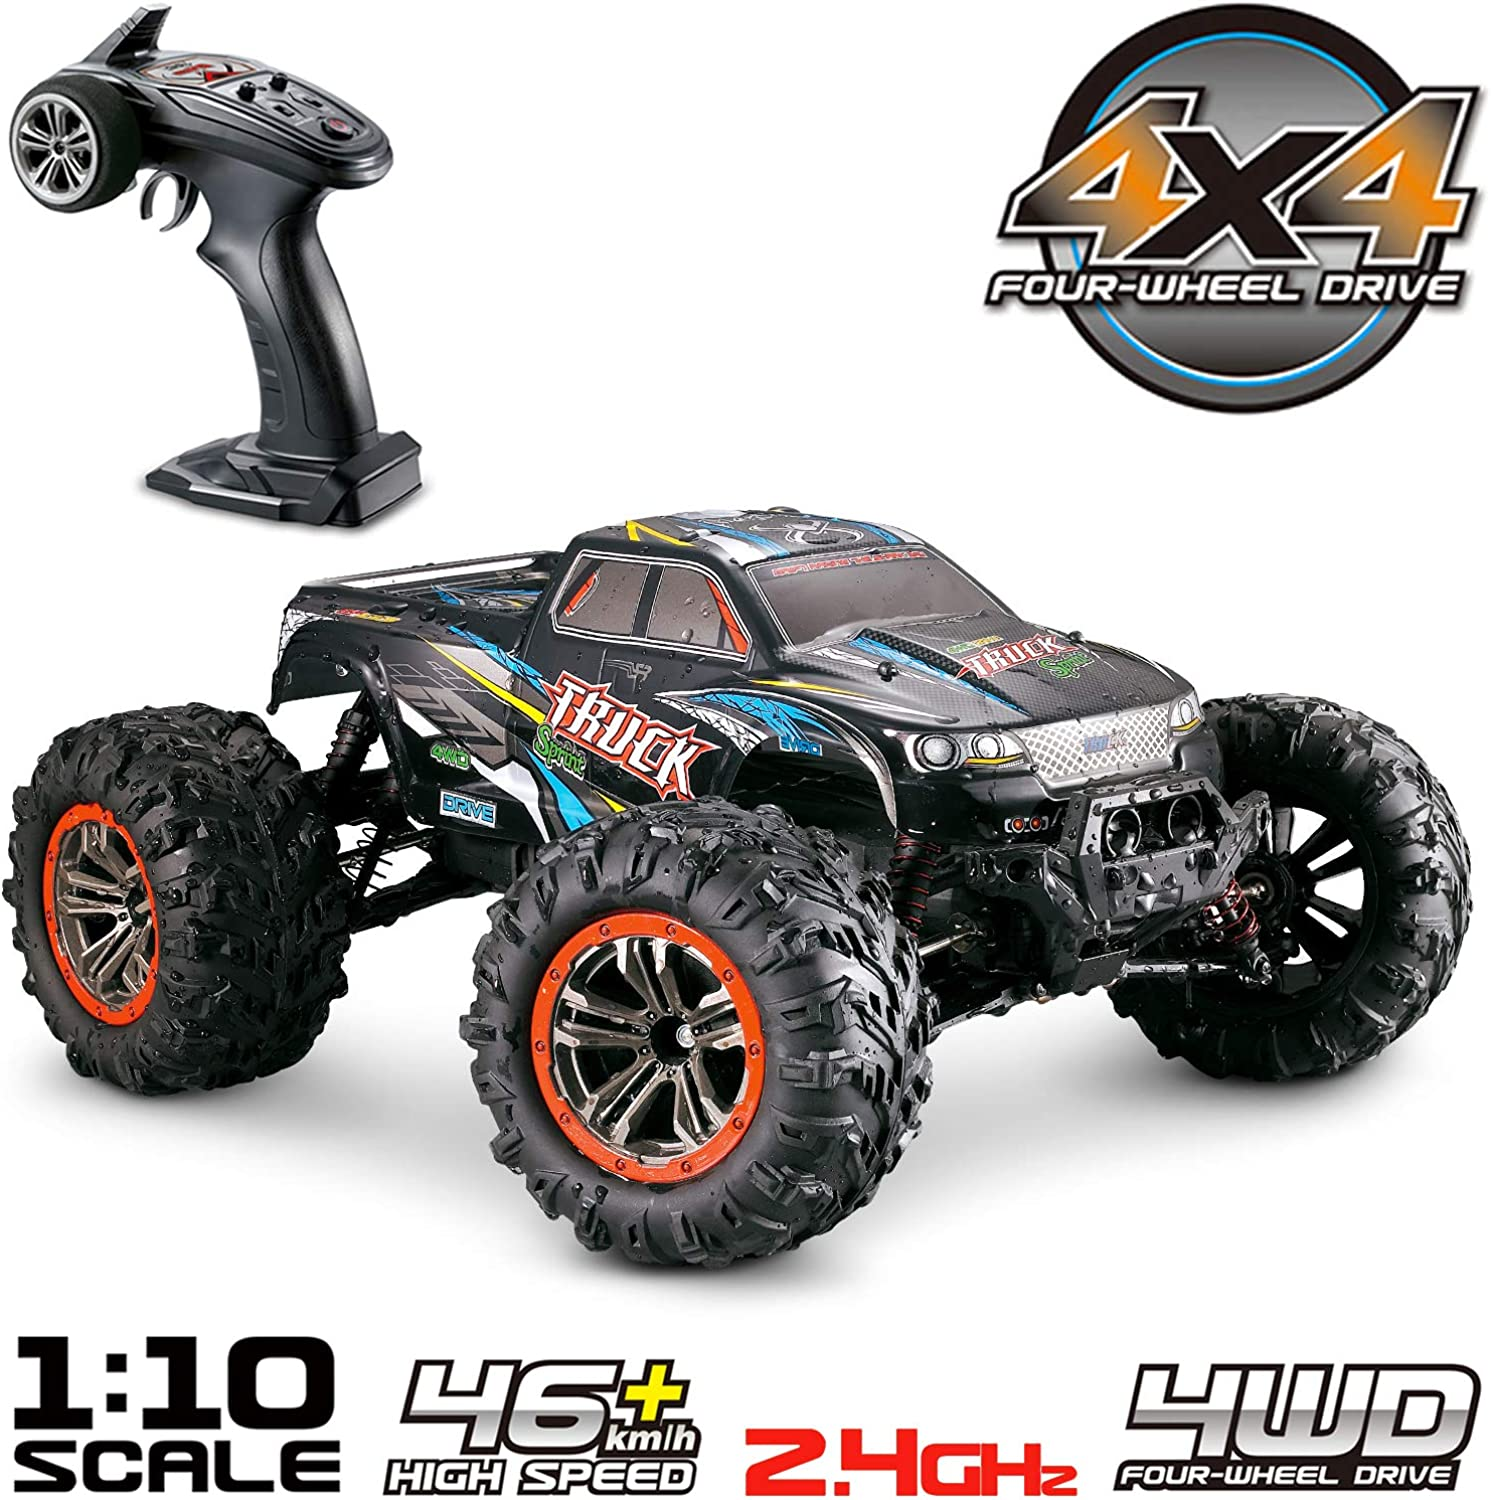 Hosim Large Size 1 10 Scale High Speed 46km h 4WD 2.4Ghz Remote Control Truck 9125, Radio Controlled OffRoad RC Car Electronic Monster Truck R C RTR Hobby Grade CrossCountry Car (bluee)